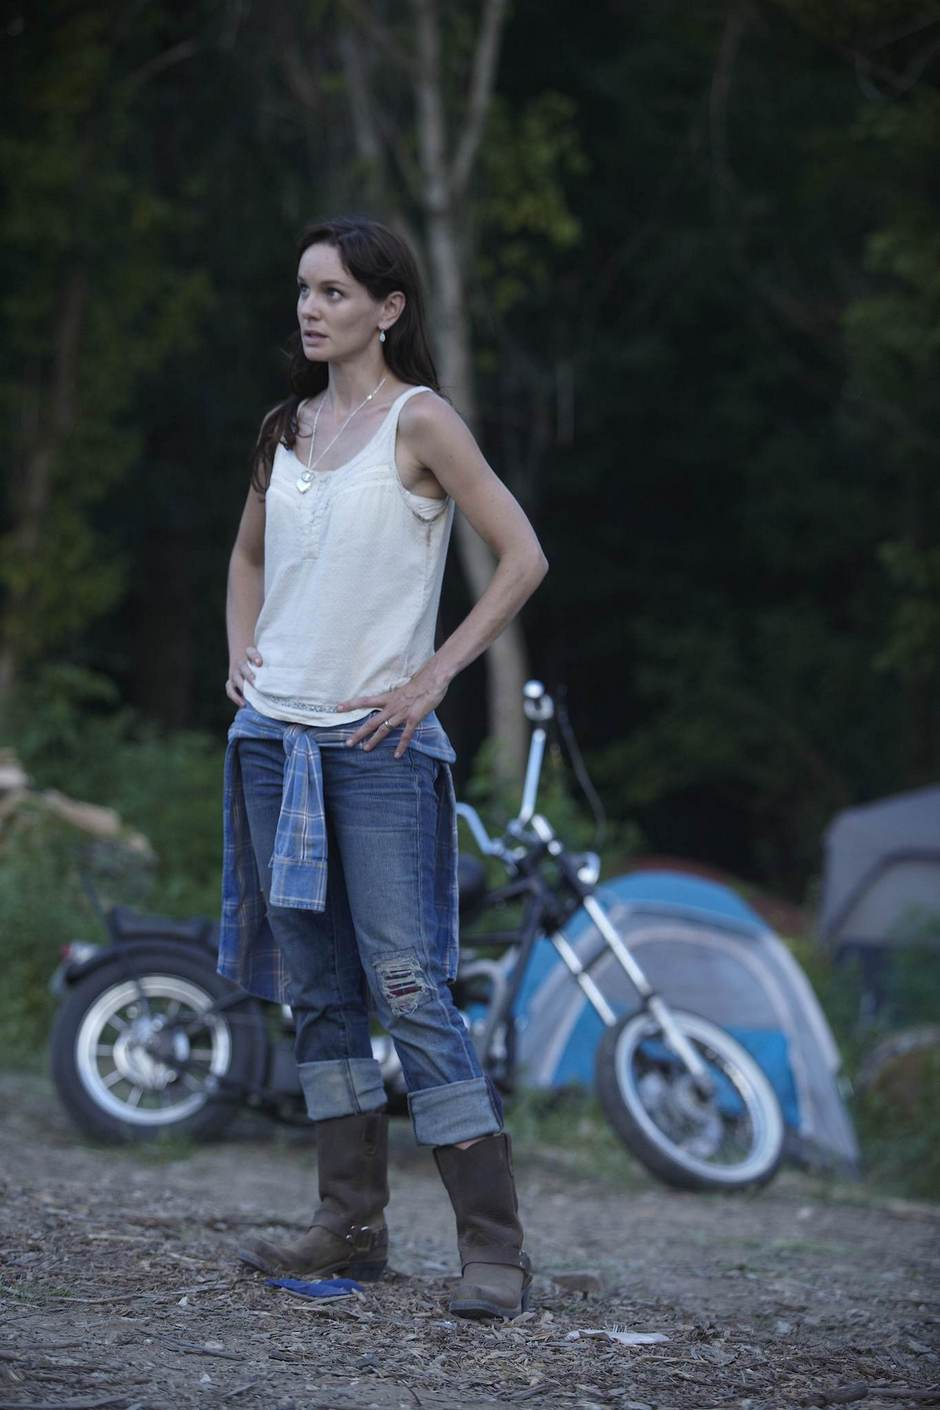 Sarah-Wayne-Callies-in-THE-WALKING-DEAD-Episode-1.01-Days-Gone-Bye-2.jpg